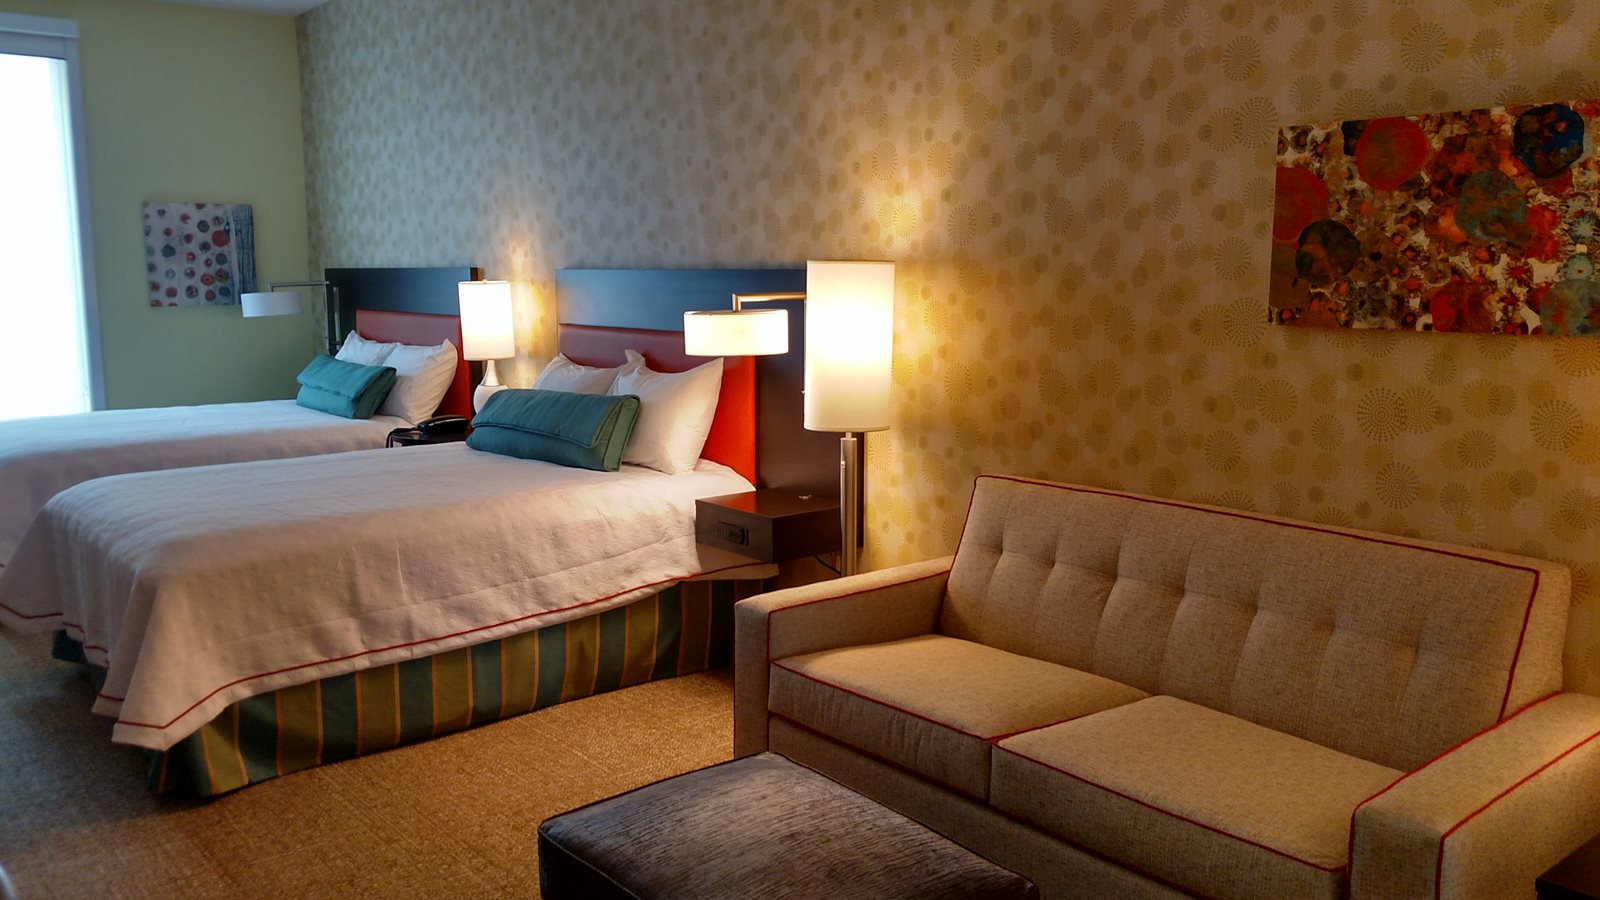 Hospitality Furnishings & Design - Home2 Suites - Greenville